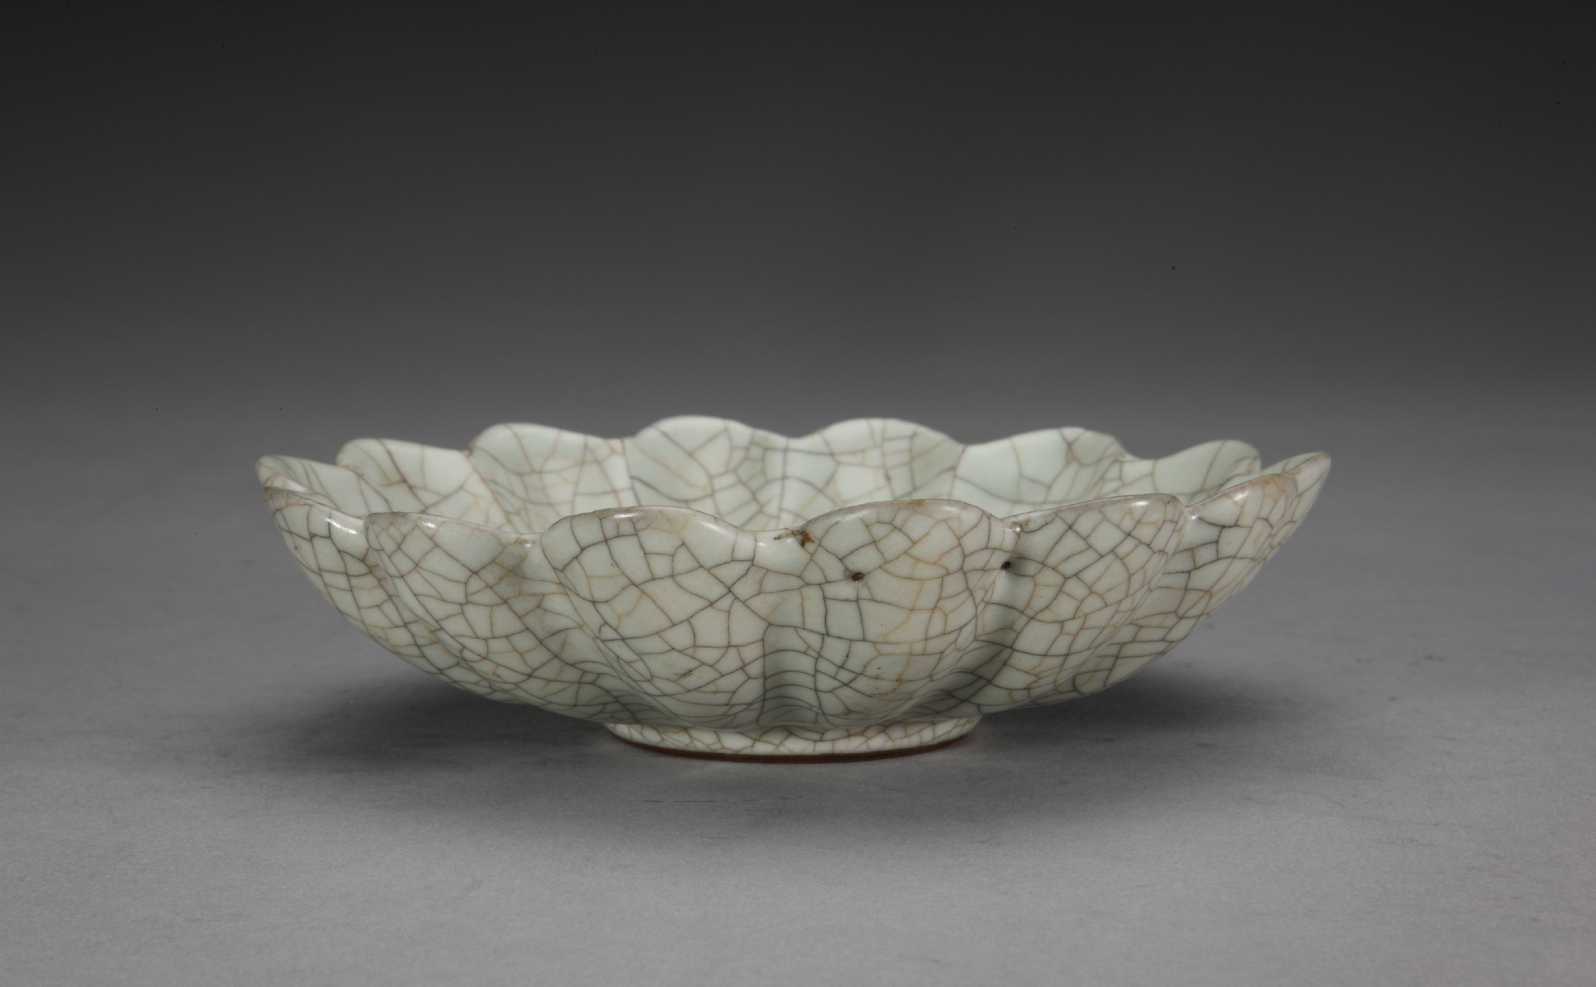 35d5dcaa928dbfe73d05ba0daad1d525 Ceramic  collections in  The Palace Museum - shengjiang  ceramic  factory   porcelain art hand basin wash sink